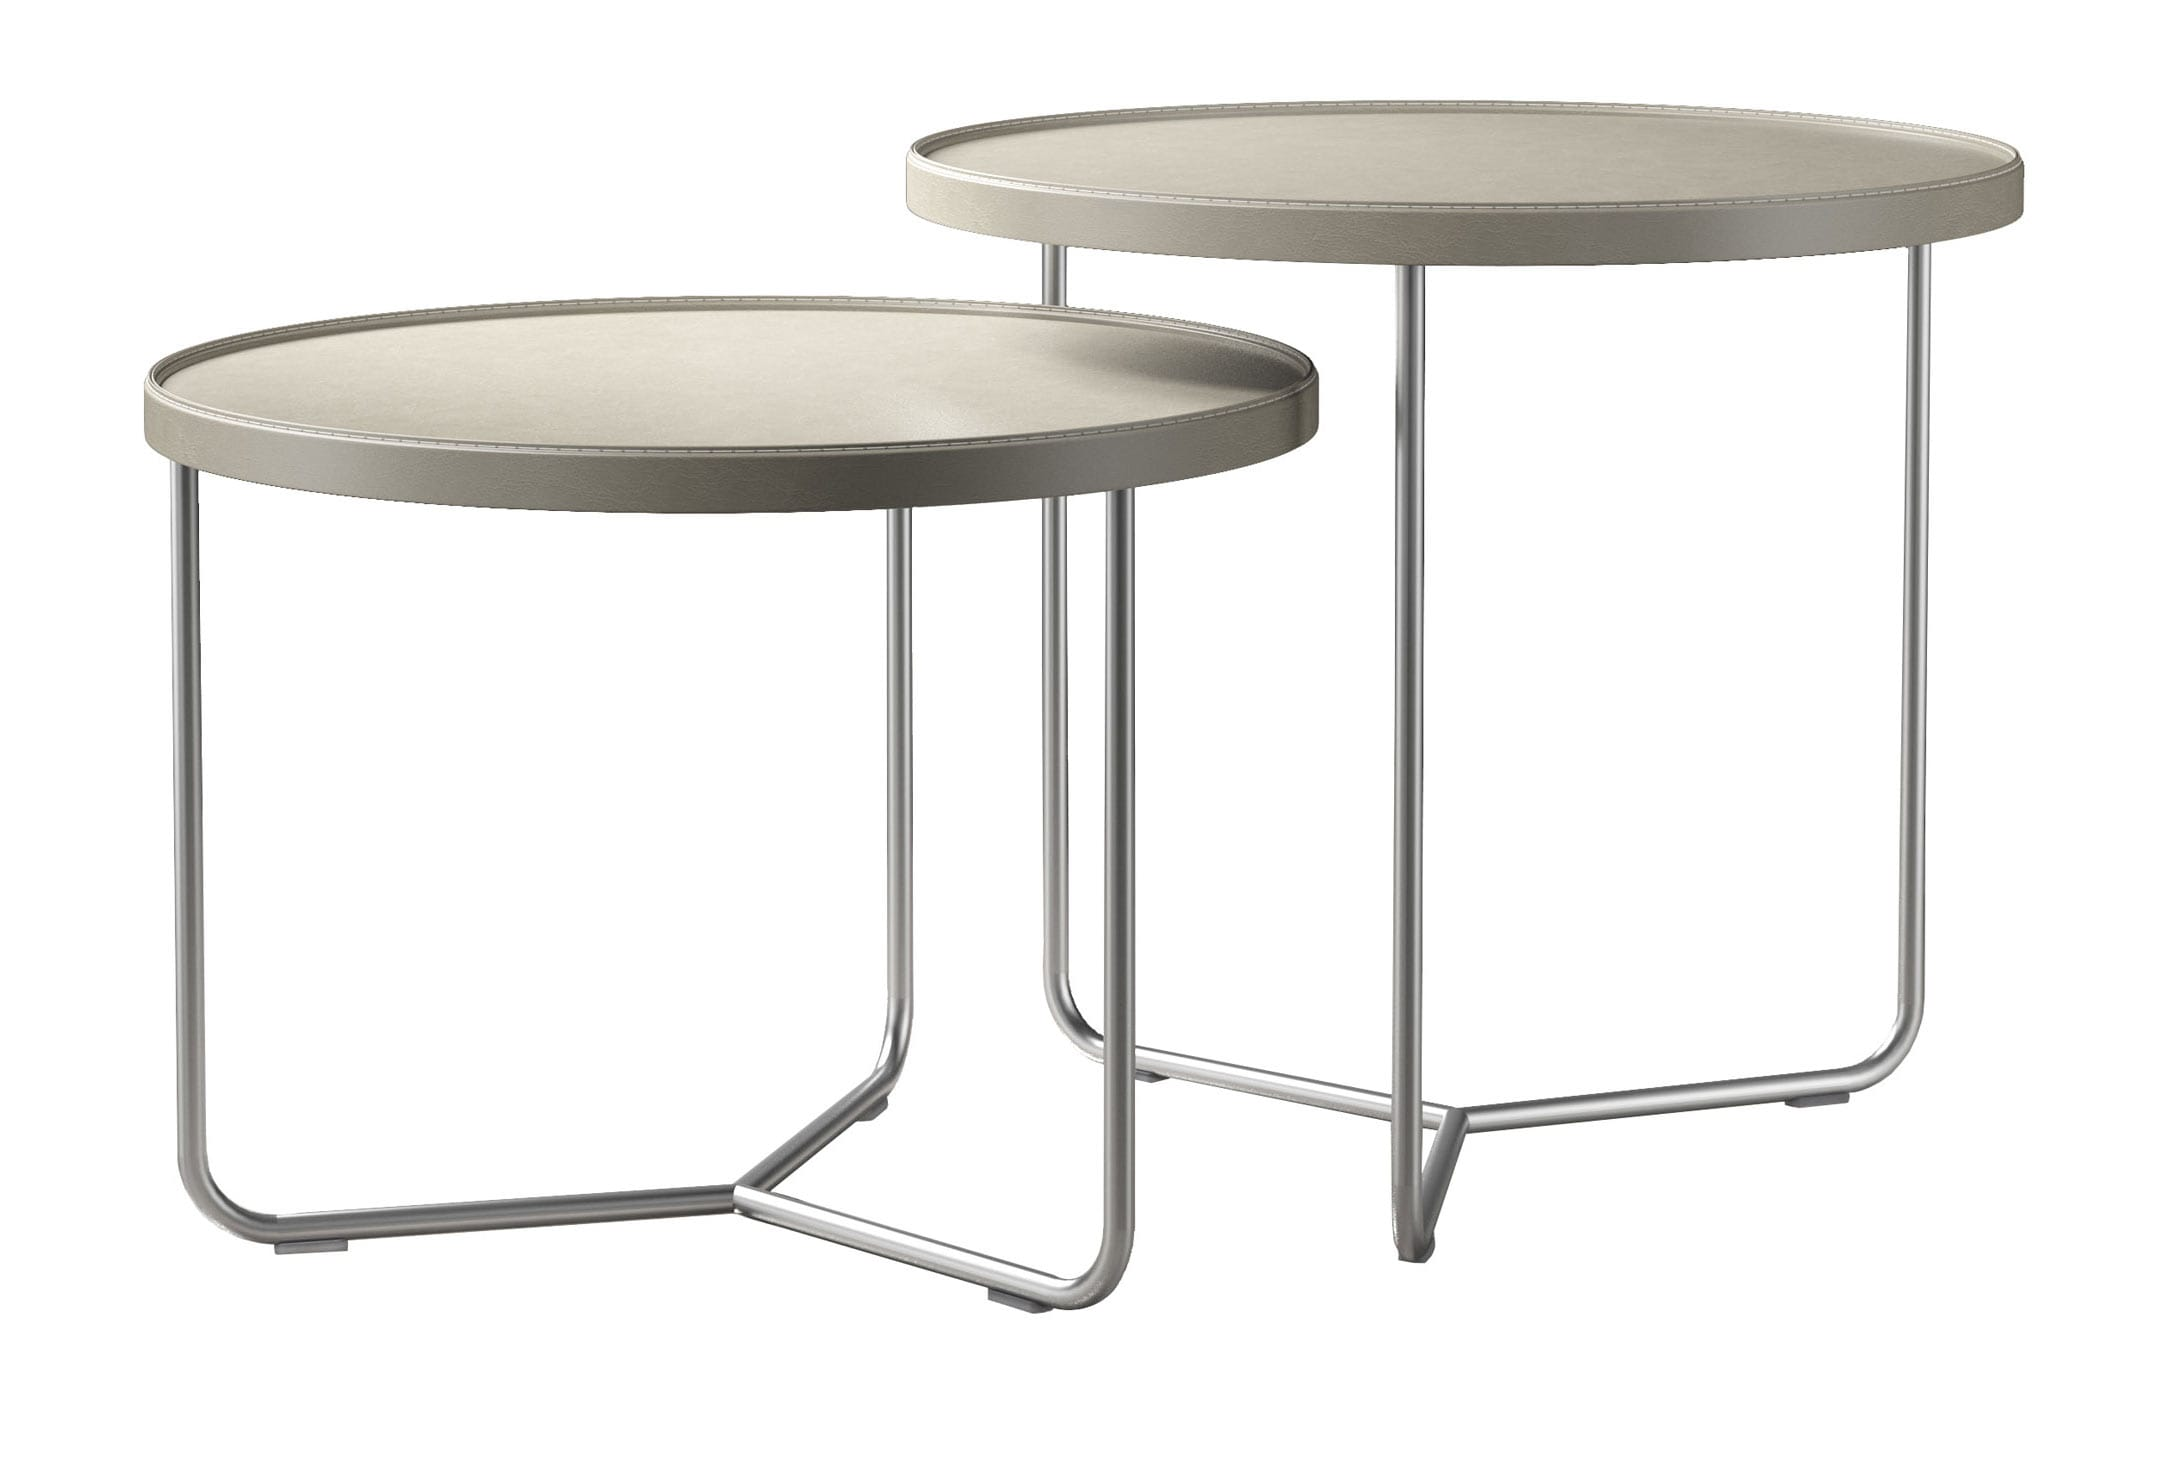 Adelphi Nesting Side Table Set Beige by Modloft